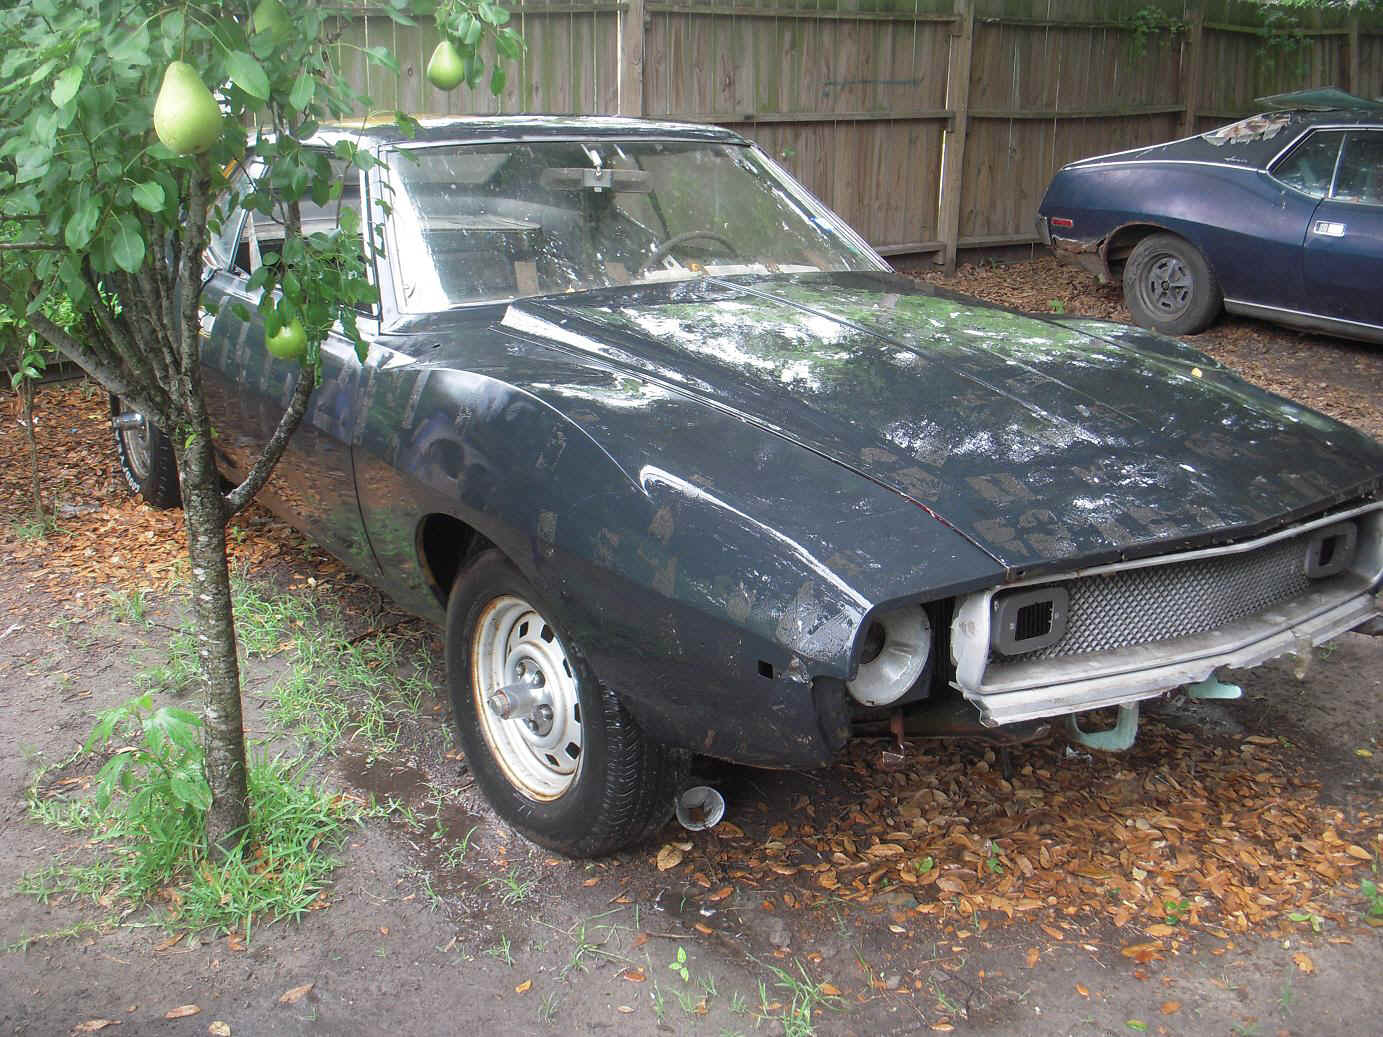 74-amc-amx-for-sale-8.jpg (338500 bytes)